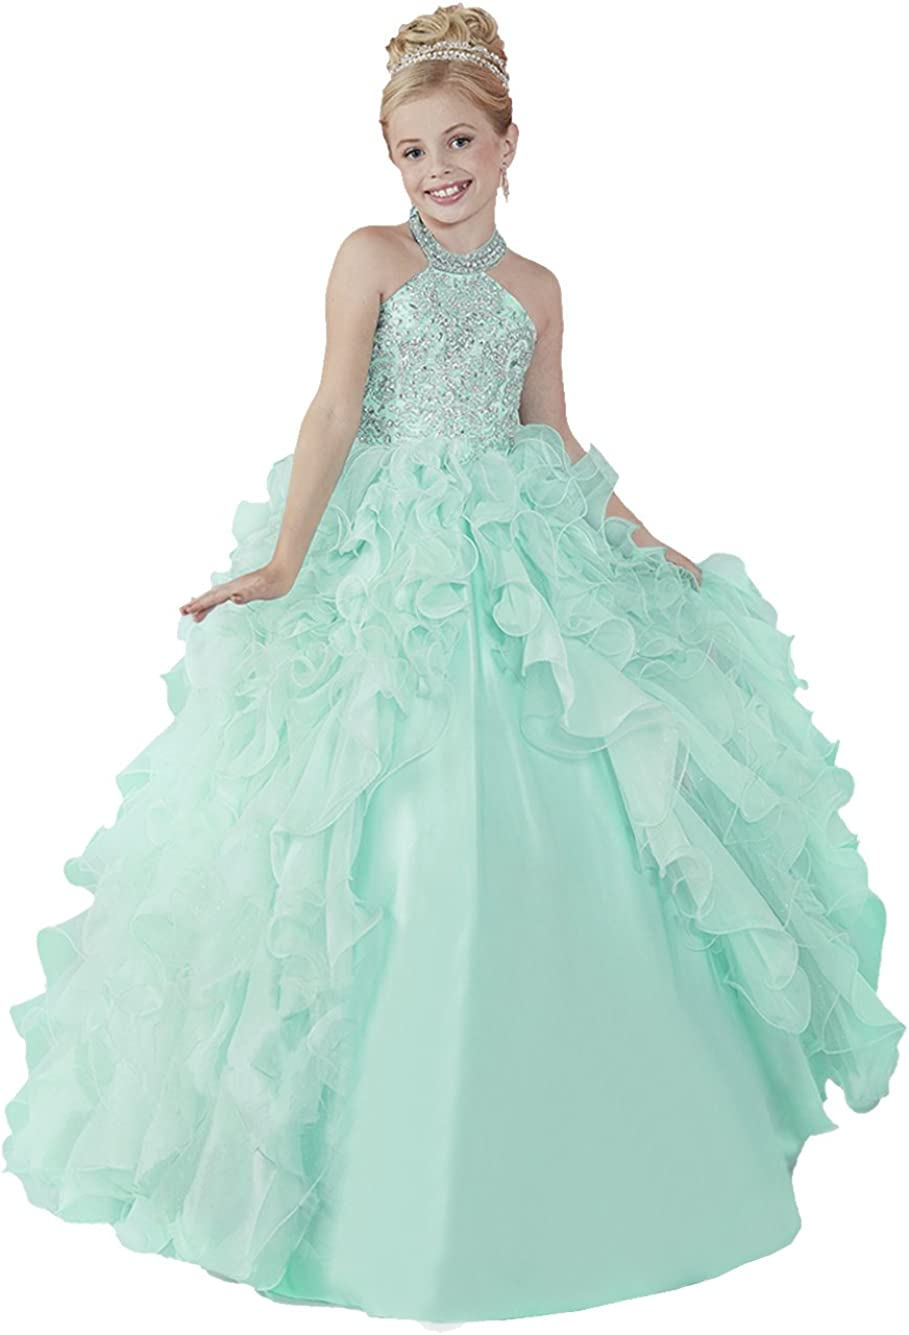 WZY New Girls' Long Pageant Ruffle Dresses Applique Beading Floor-Length Prom Party Gowns